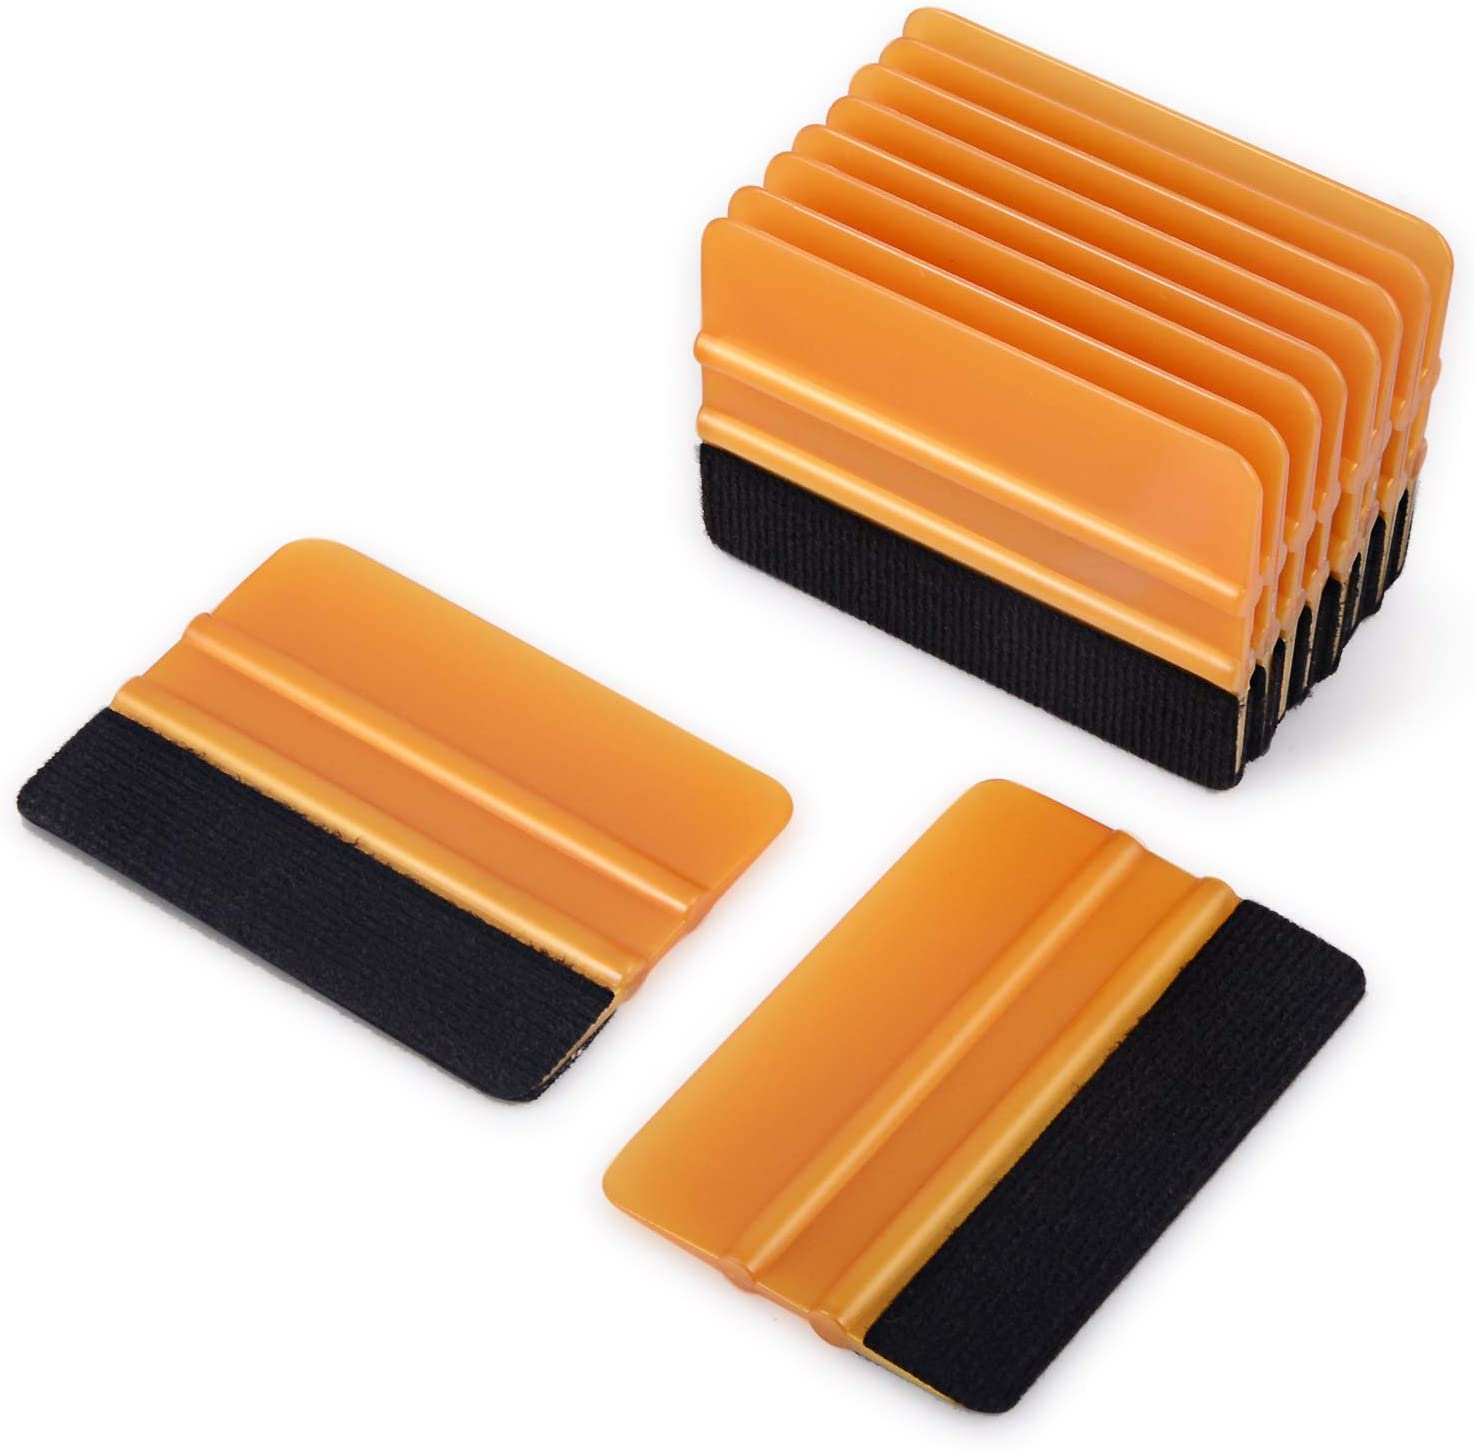 9 Kinds Vehicle Glass Protective Film Car Window Wrapping Tint Vinyl Installing Tool: Squeegees Film Cutters Felts Ehdis New Arrival Plus Scrapers